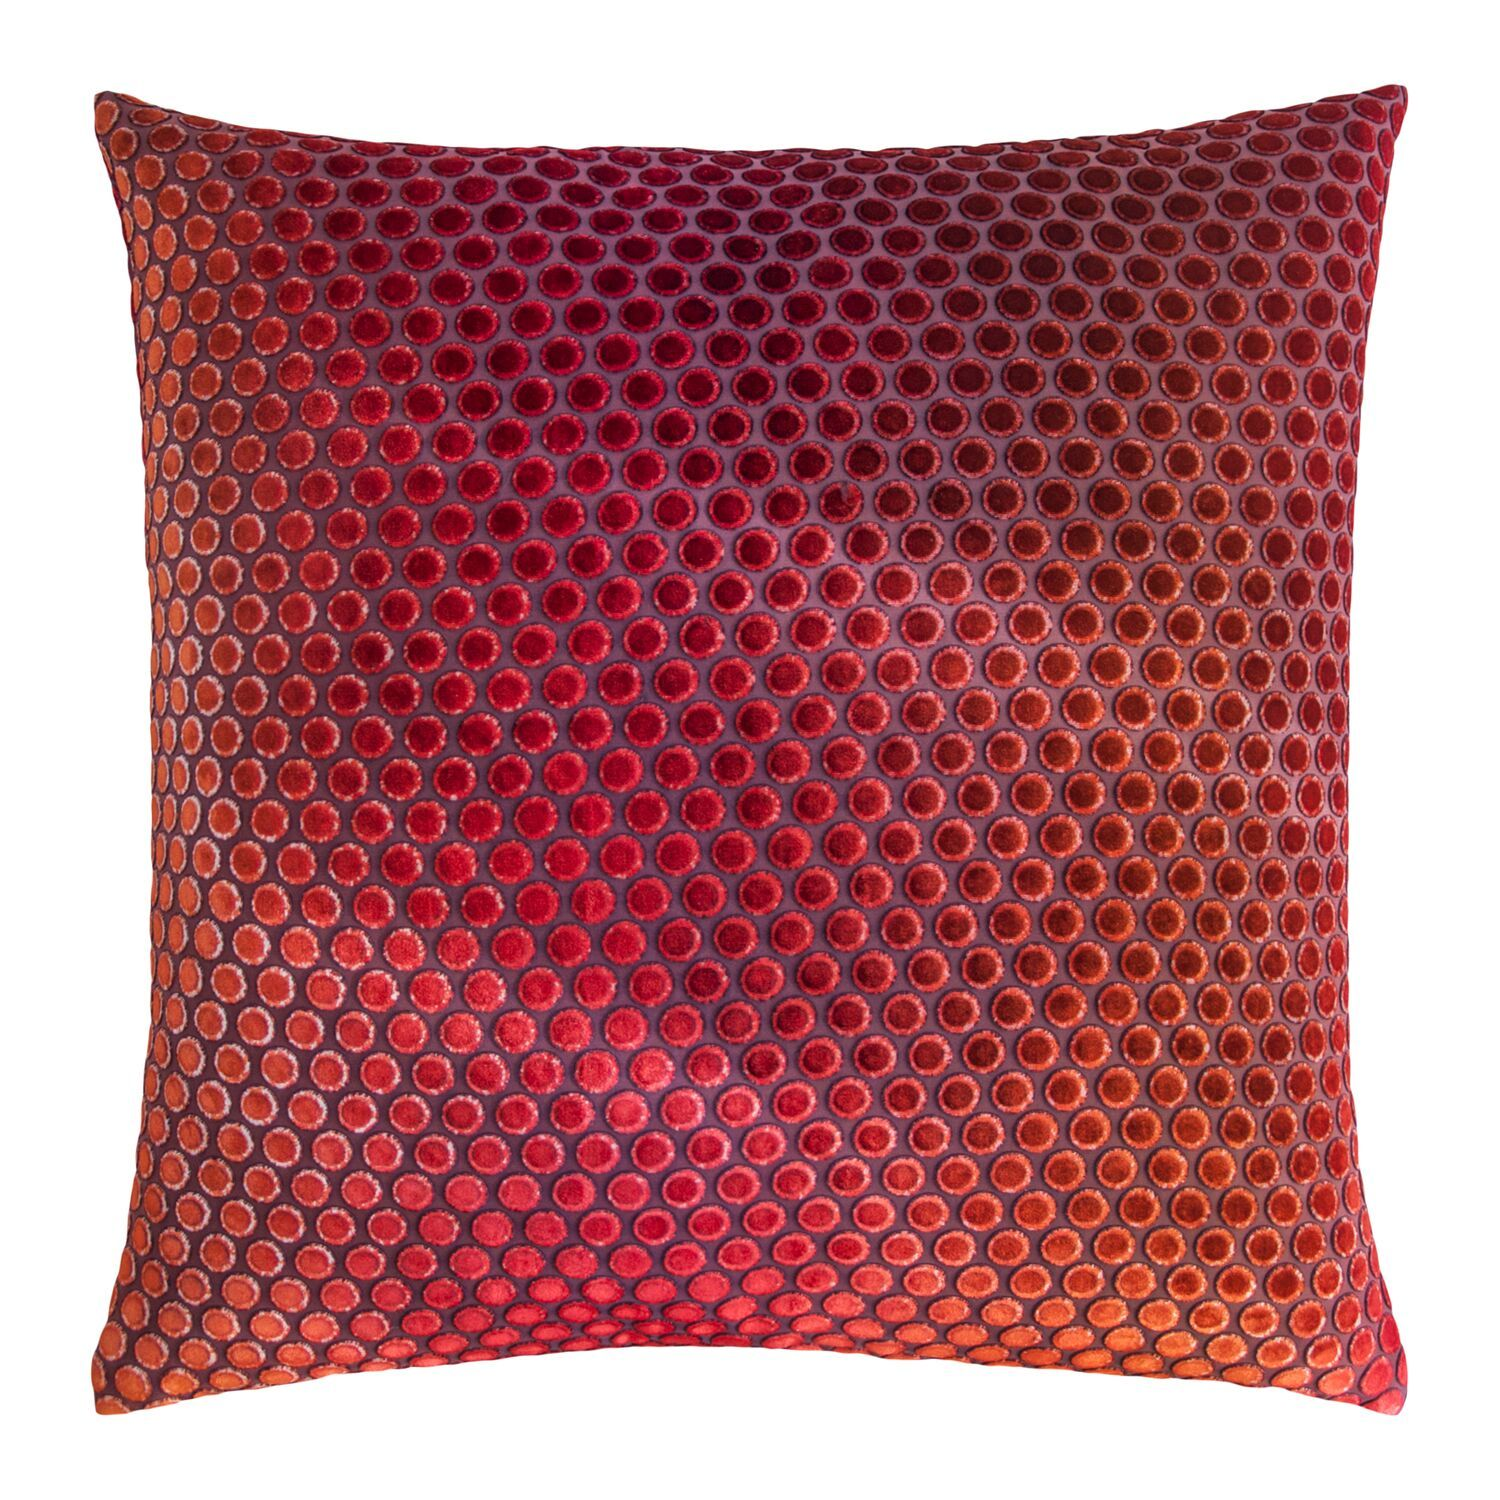 Dots Wildberry Velvet Pillows by Kevin O'Brien Studio | Fig Linens